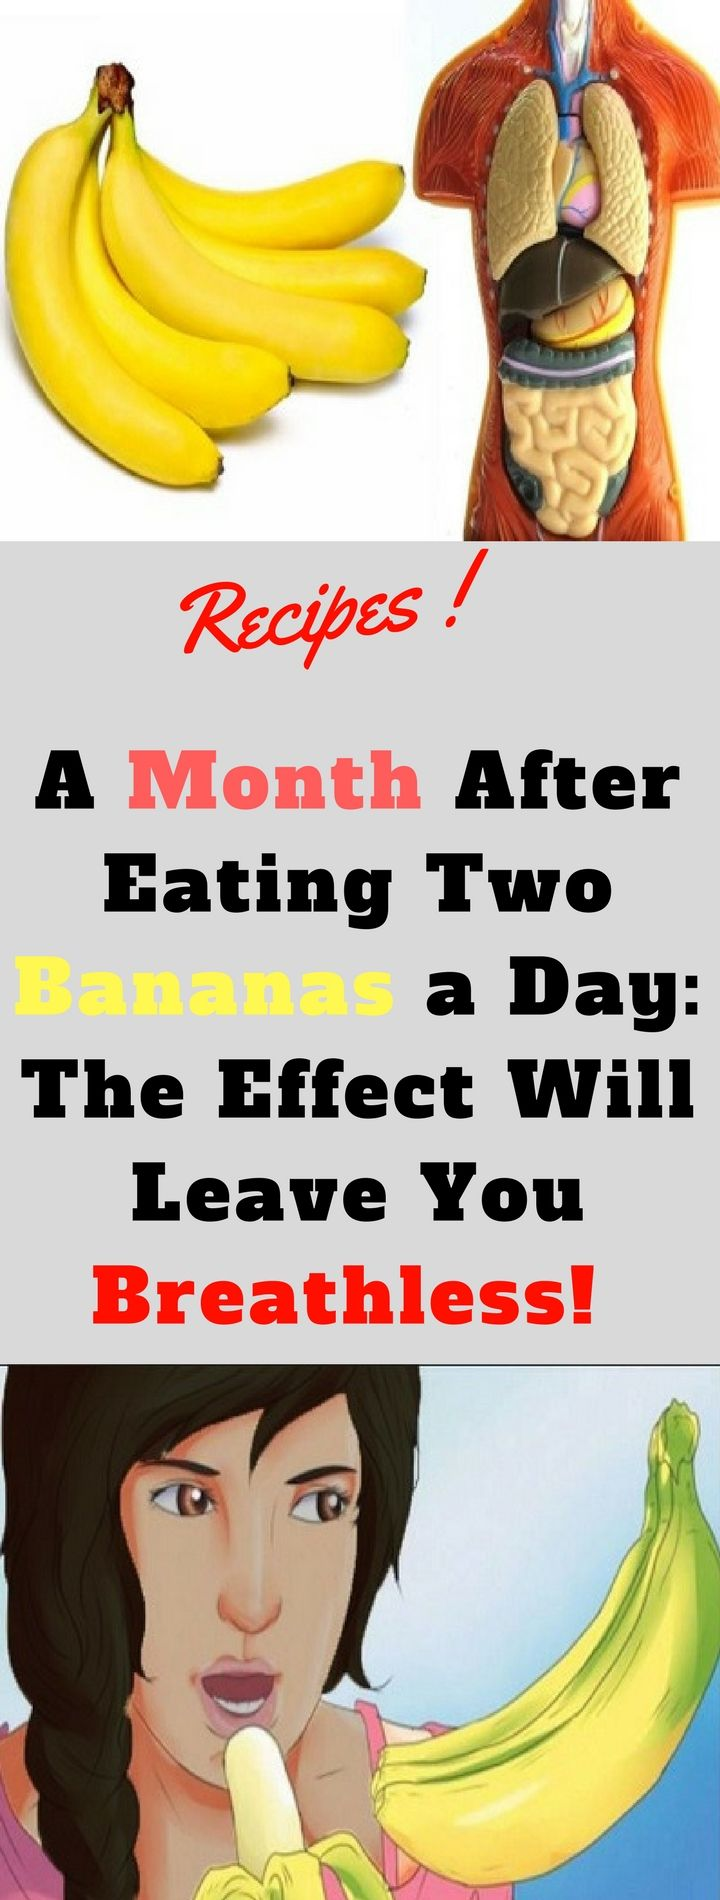 A Month After Eating Two Bananas a Day: The Effect Will Leave You Breathless..!!!